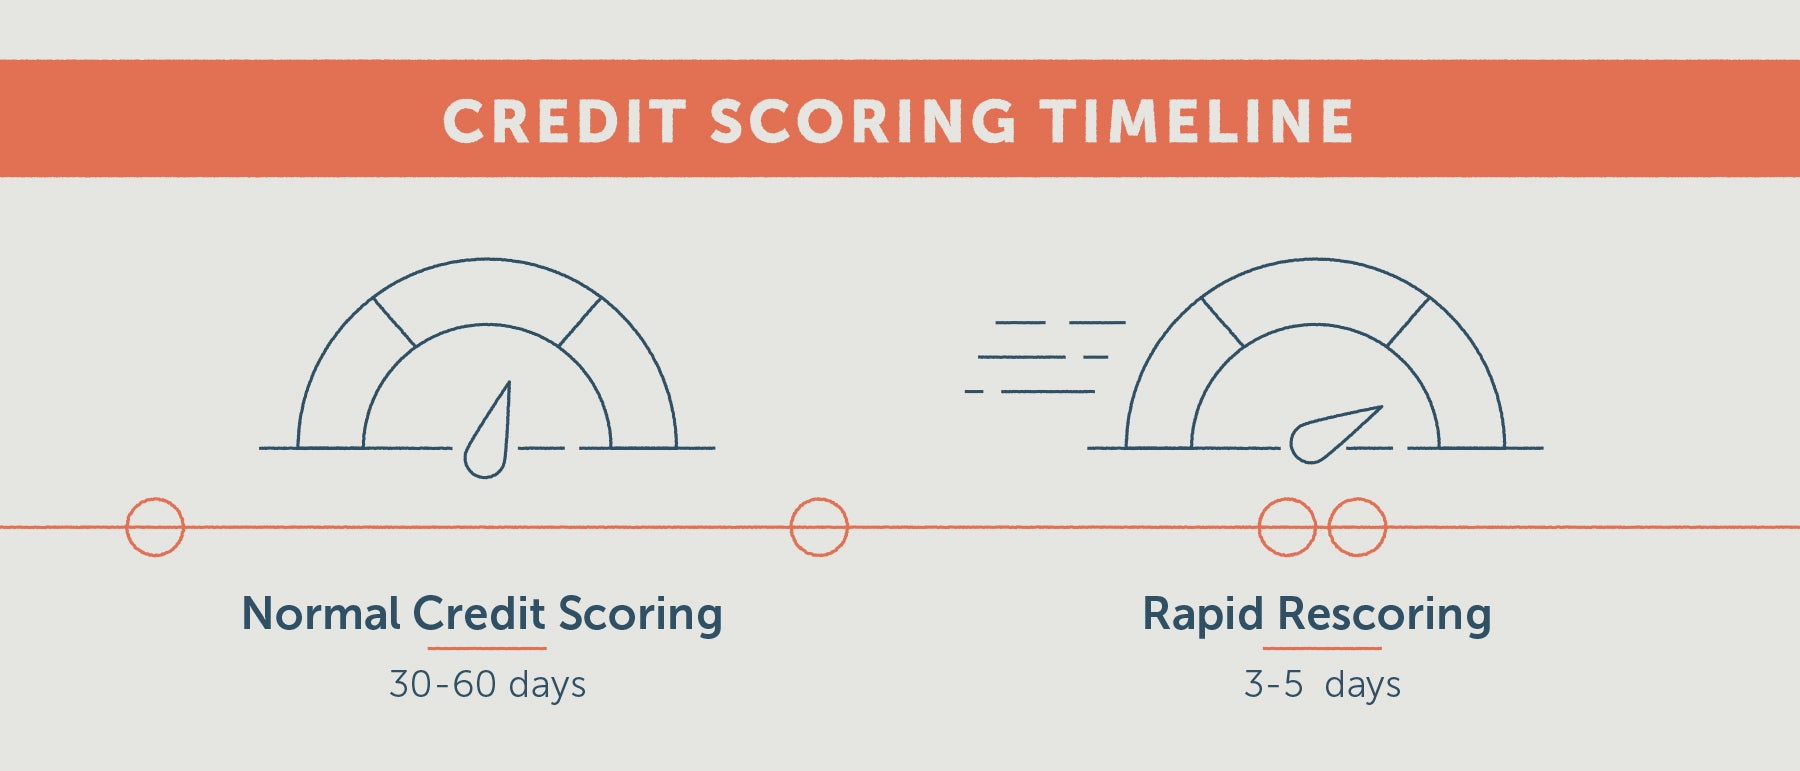 timeline showing the difference between normal credit scoring and rapid rescoring